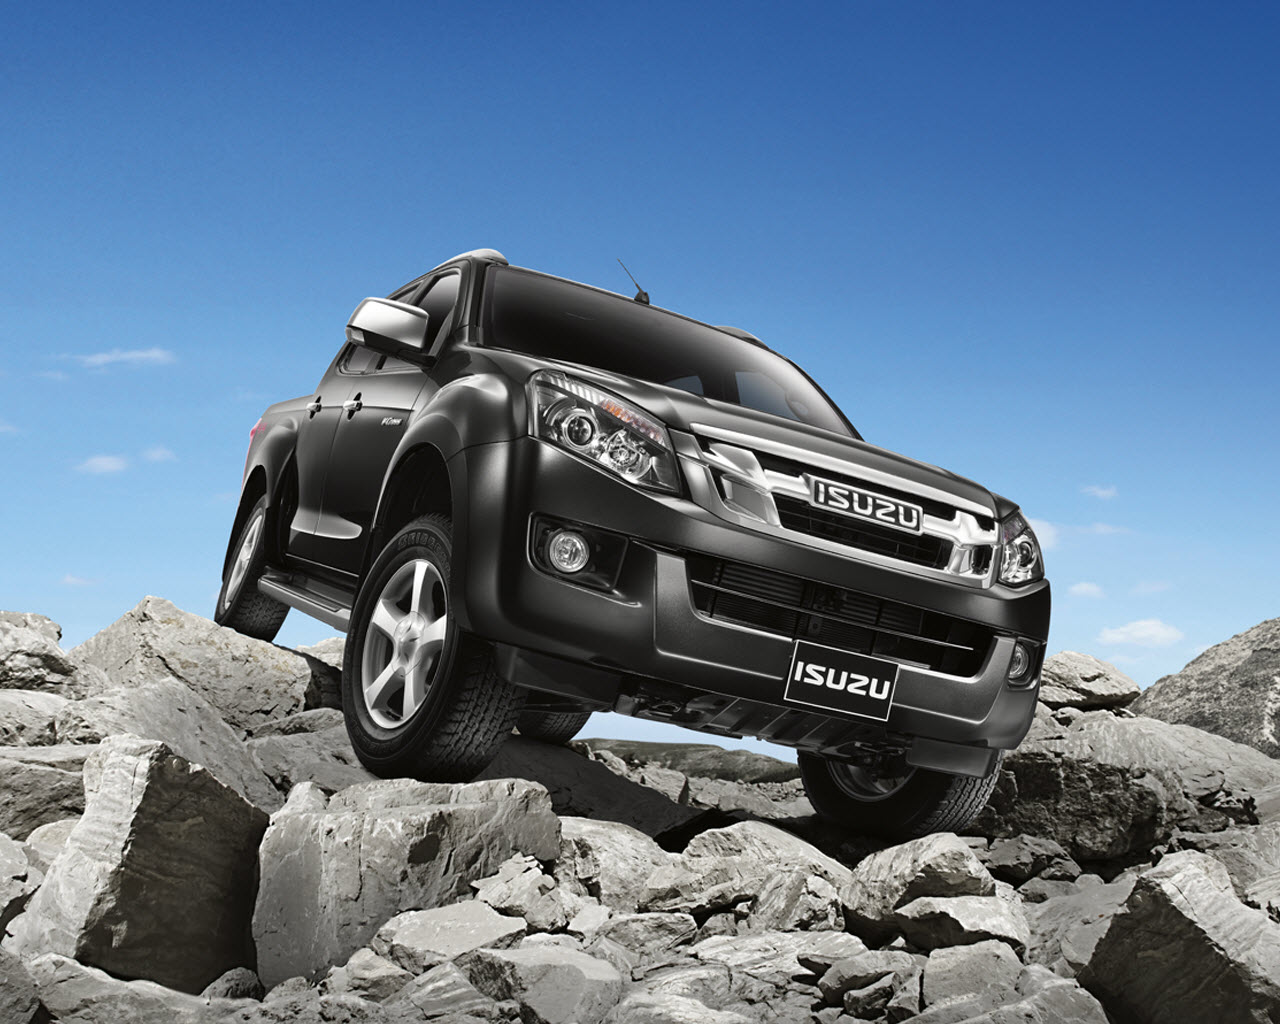 New Isuzu D-Max pick-up will be introduced in June 2012 Aggressively